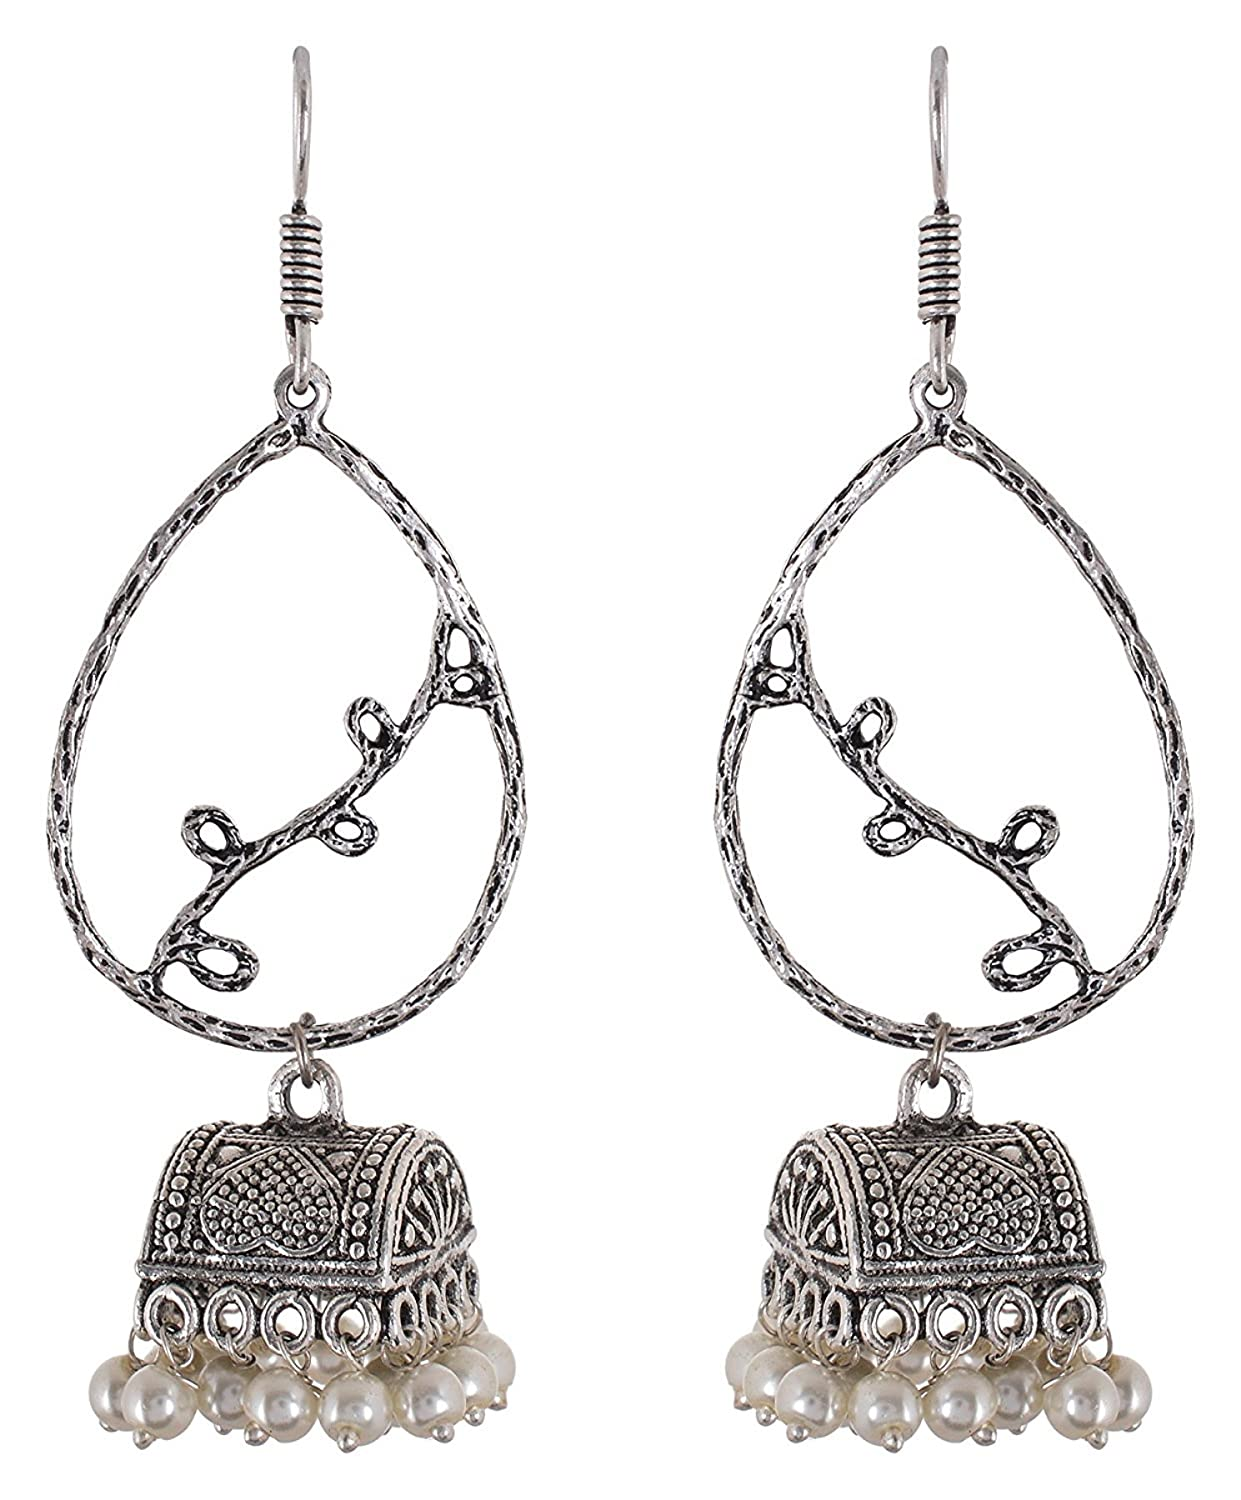 Subharpit White Floral Double Hanging Oxidized Silver Indian Jhumka Jhumki Earring for Woman and Girls